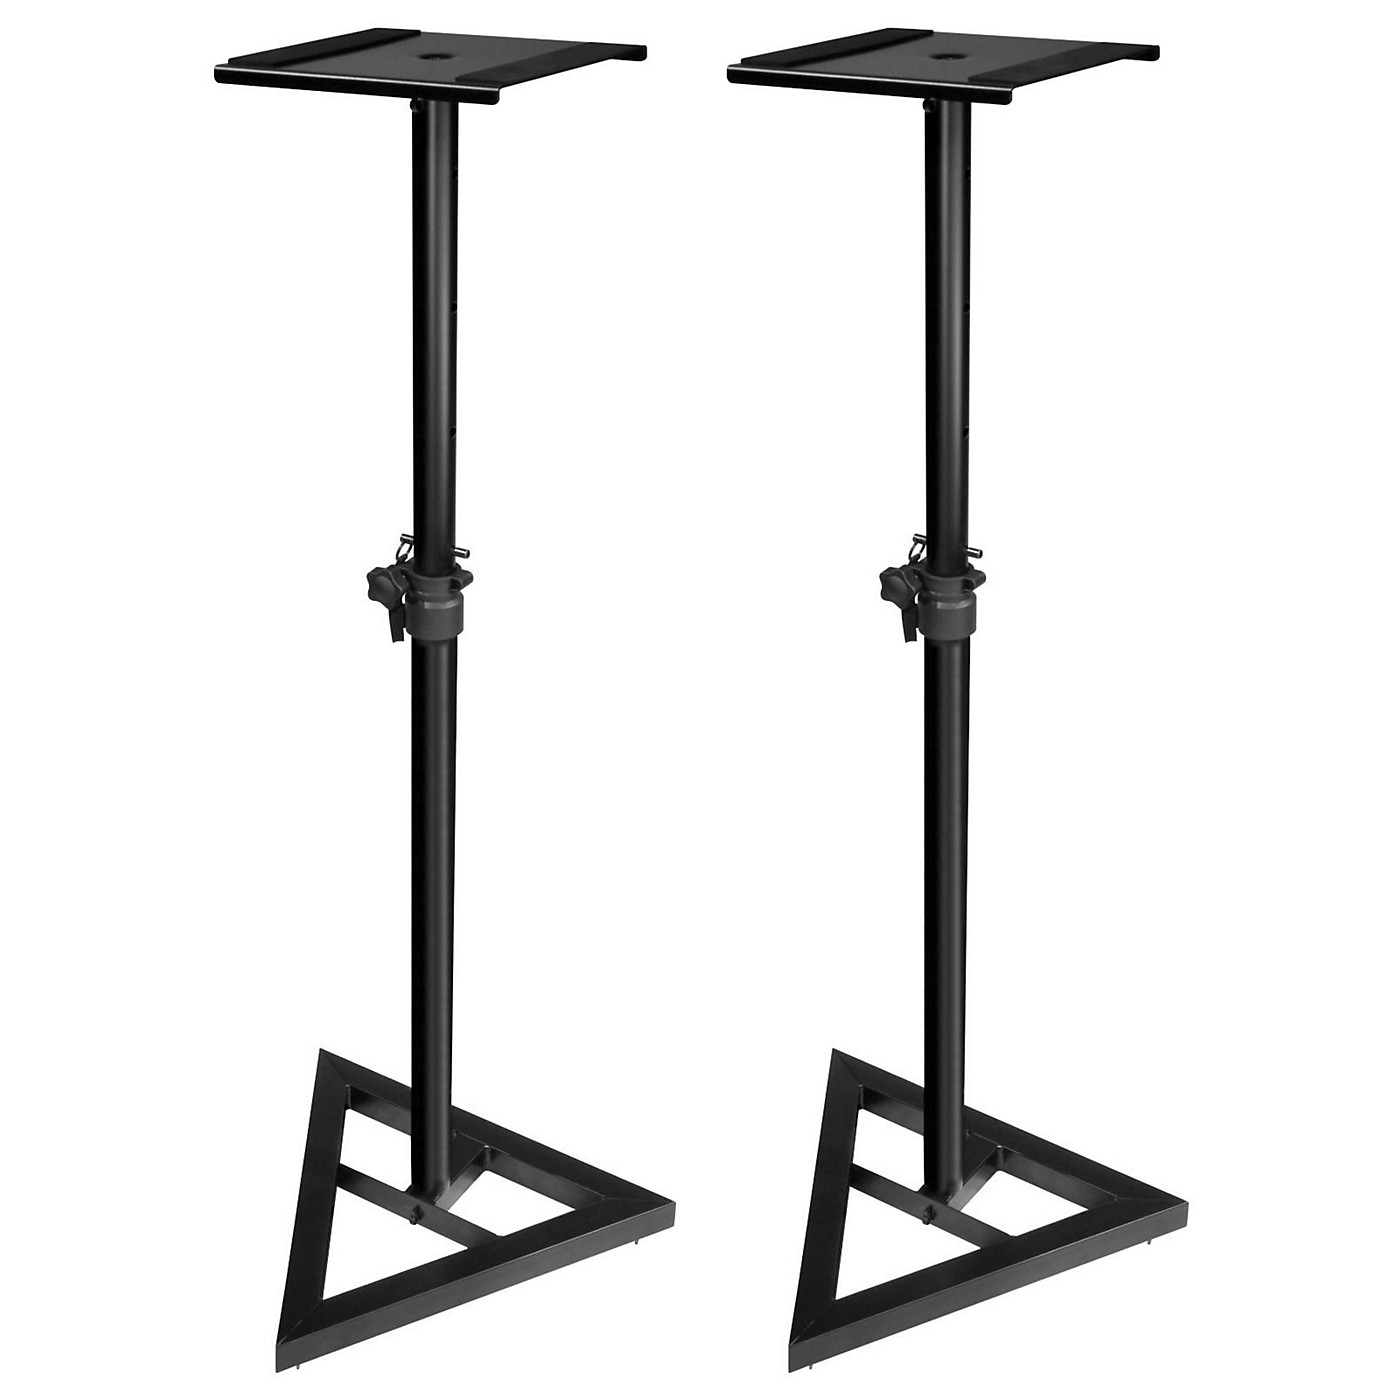 JAMSTANDS JS-MS70 JamStands Adjustable Monitor Stand Pair thumbnail